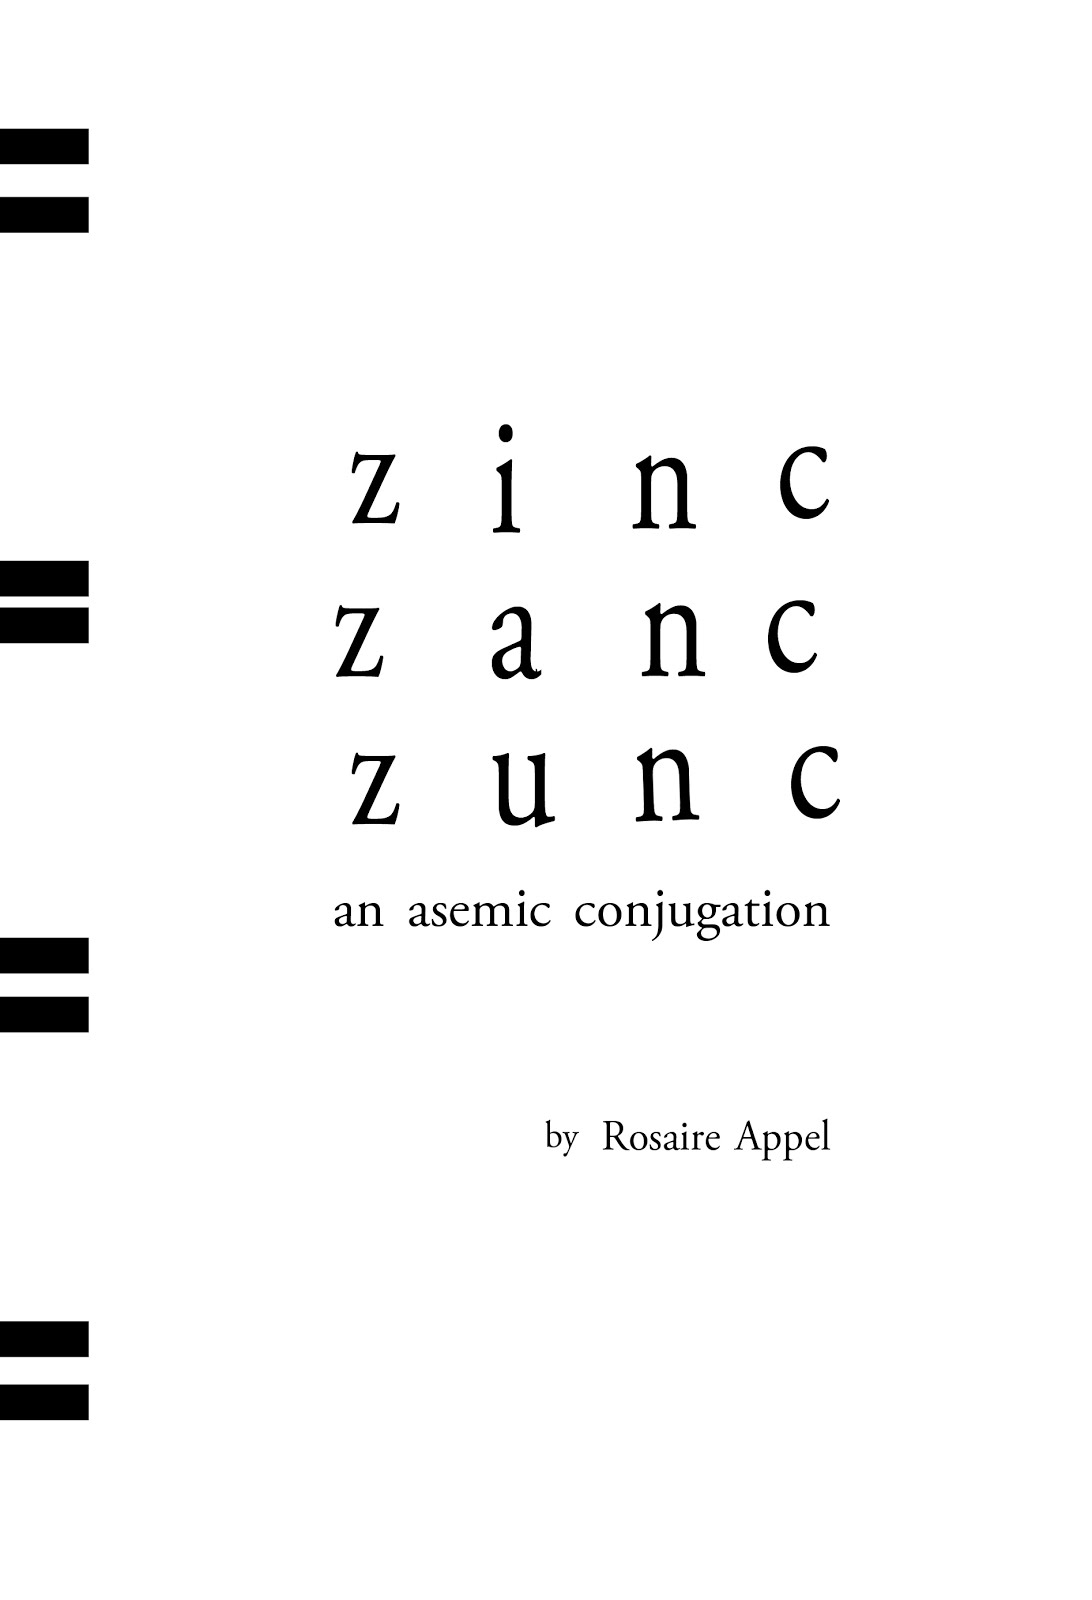 Coming Soon! From Post-Asemic Press